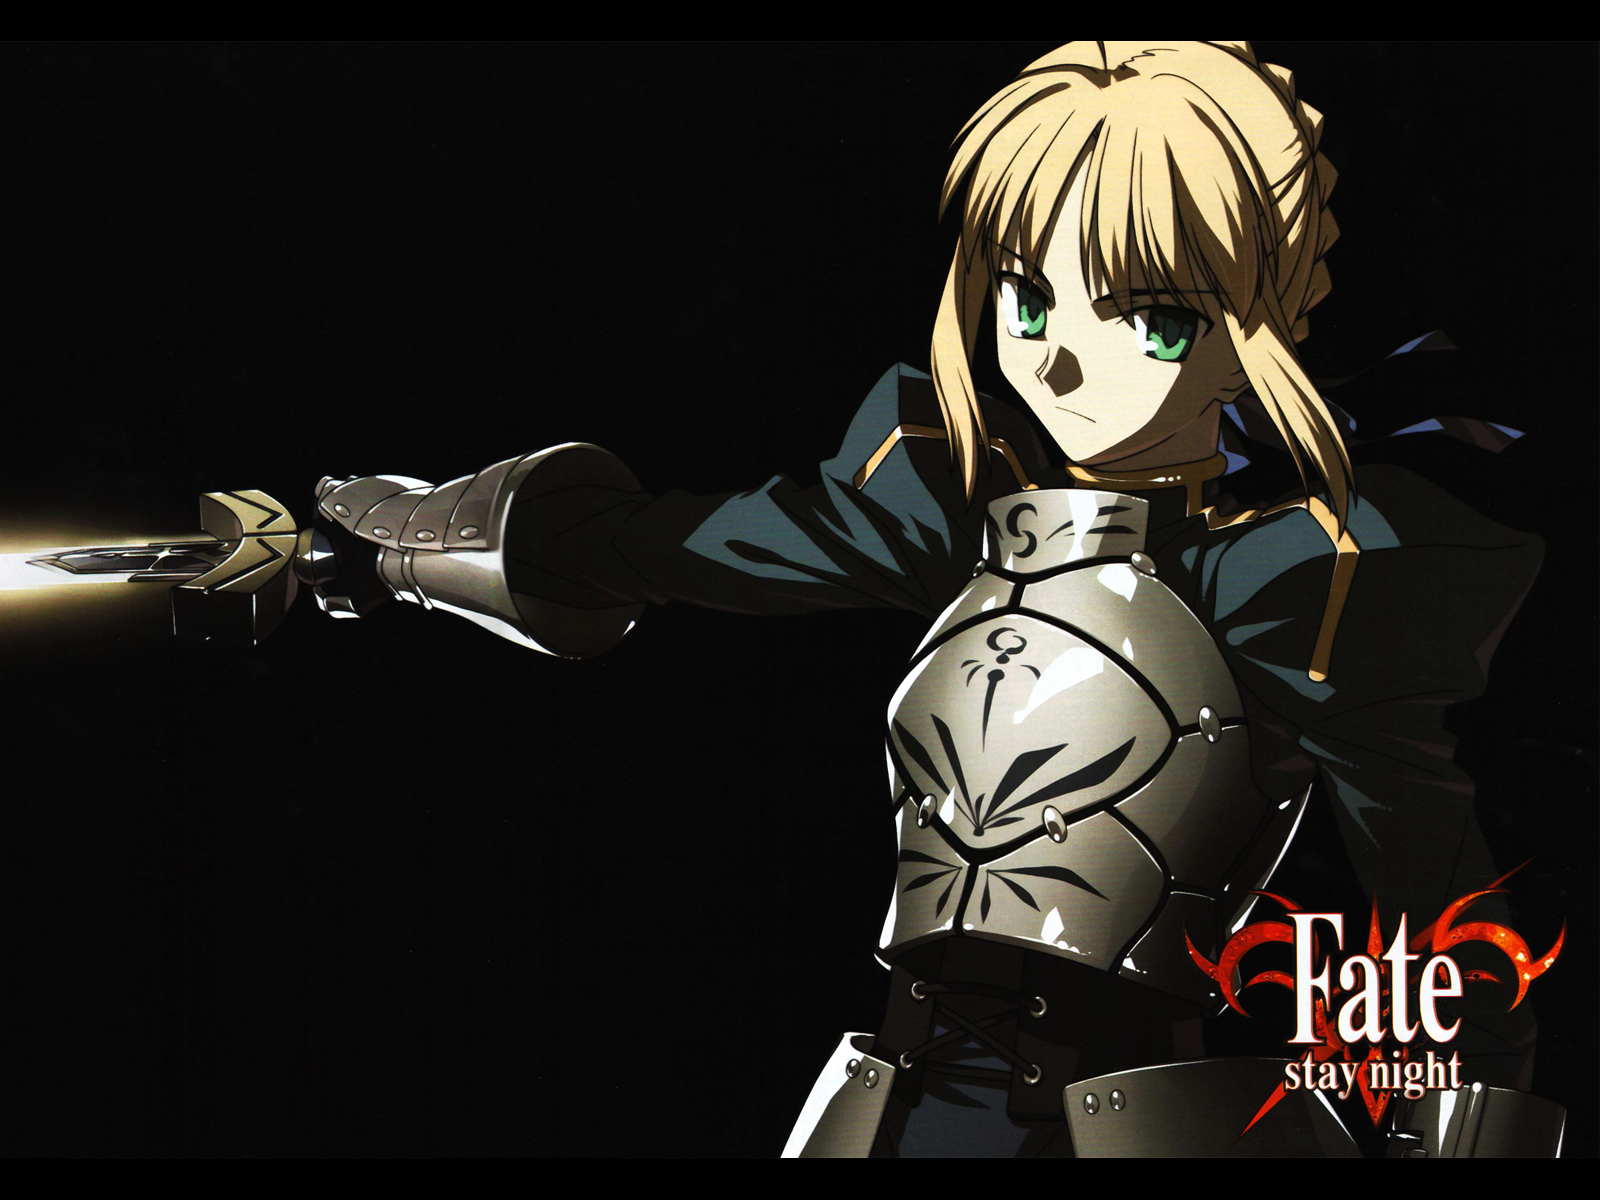 Saber FateStay Night   Fate Stay Night Wallpaper 24684552 1600x1200